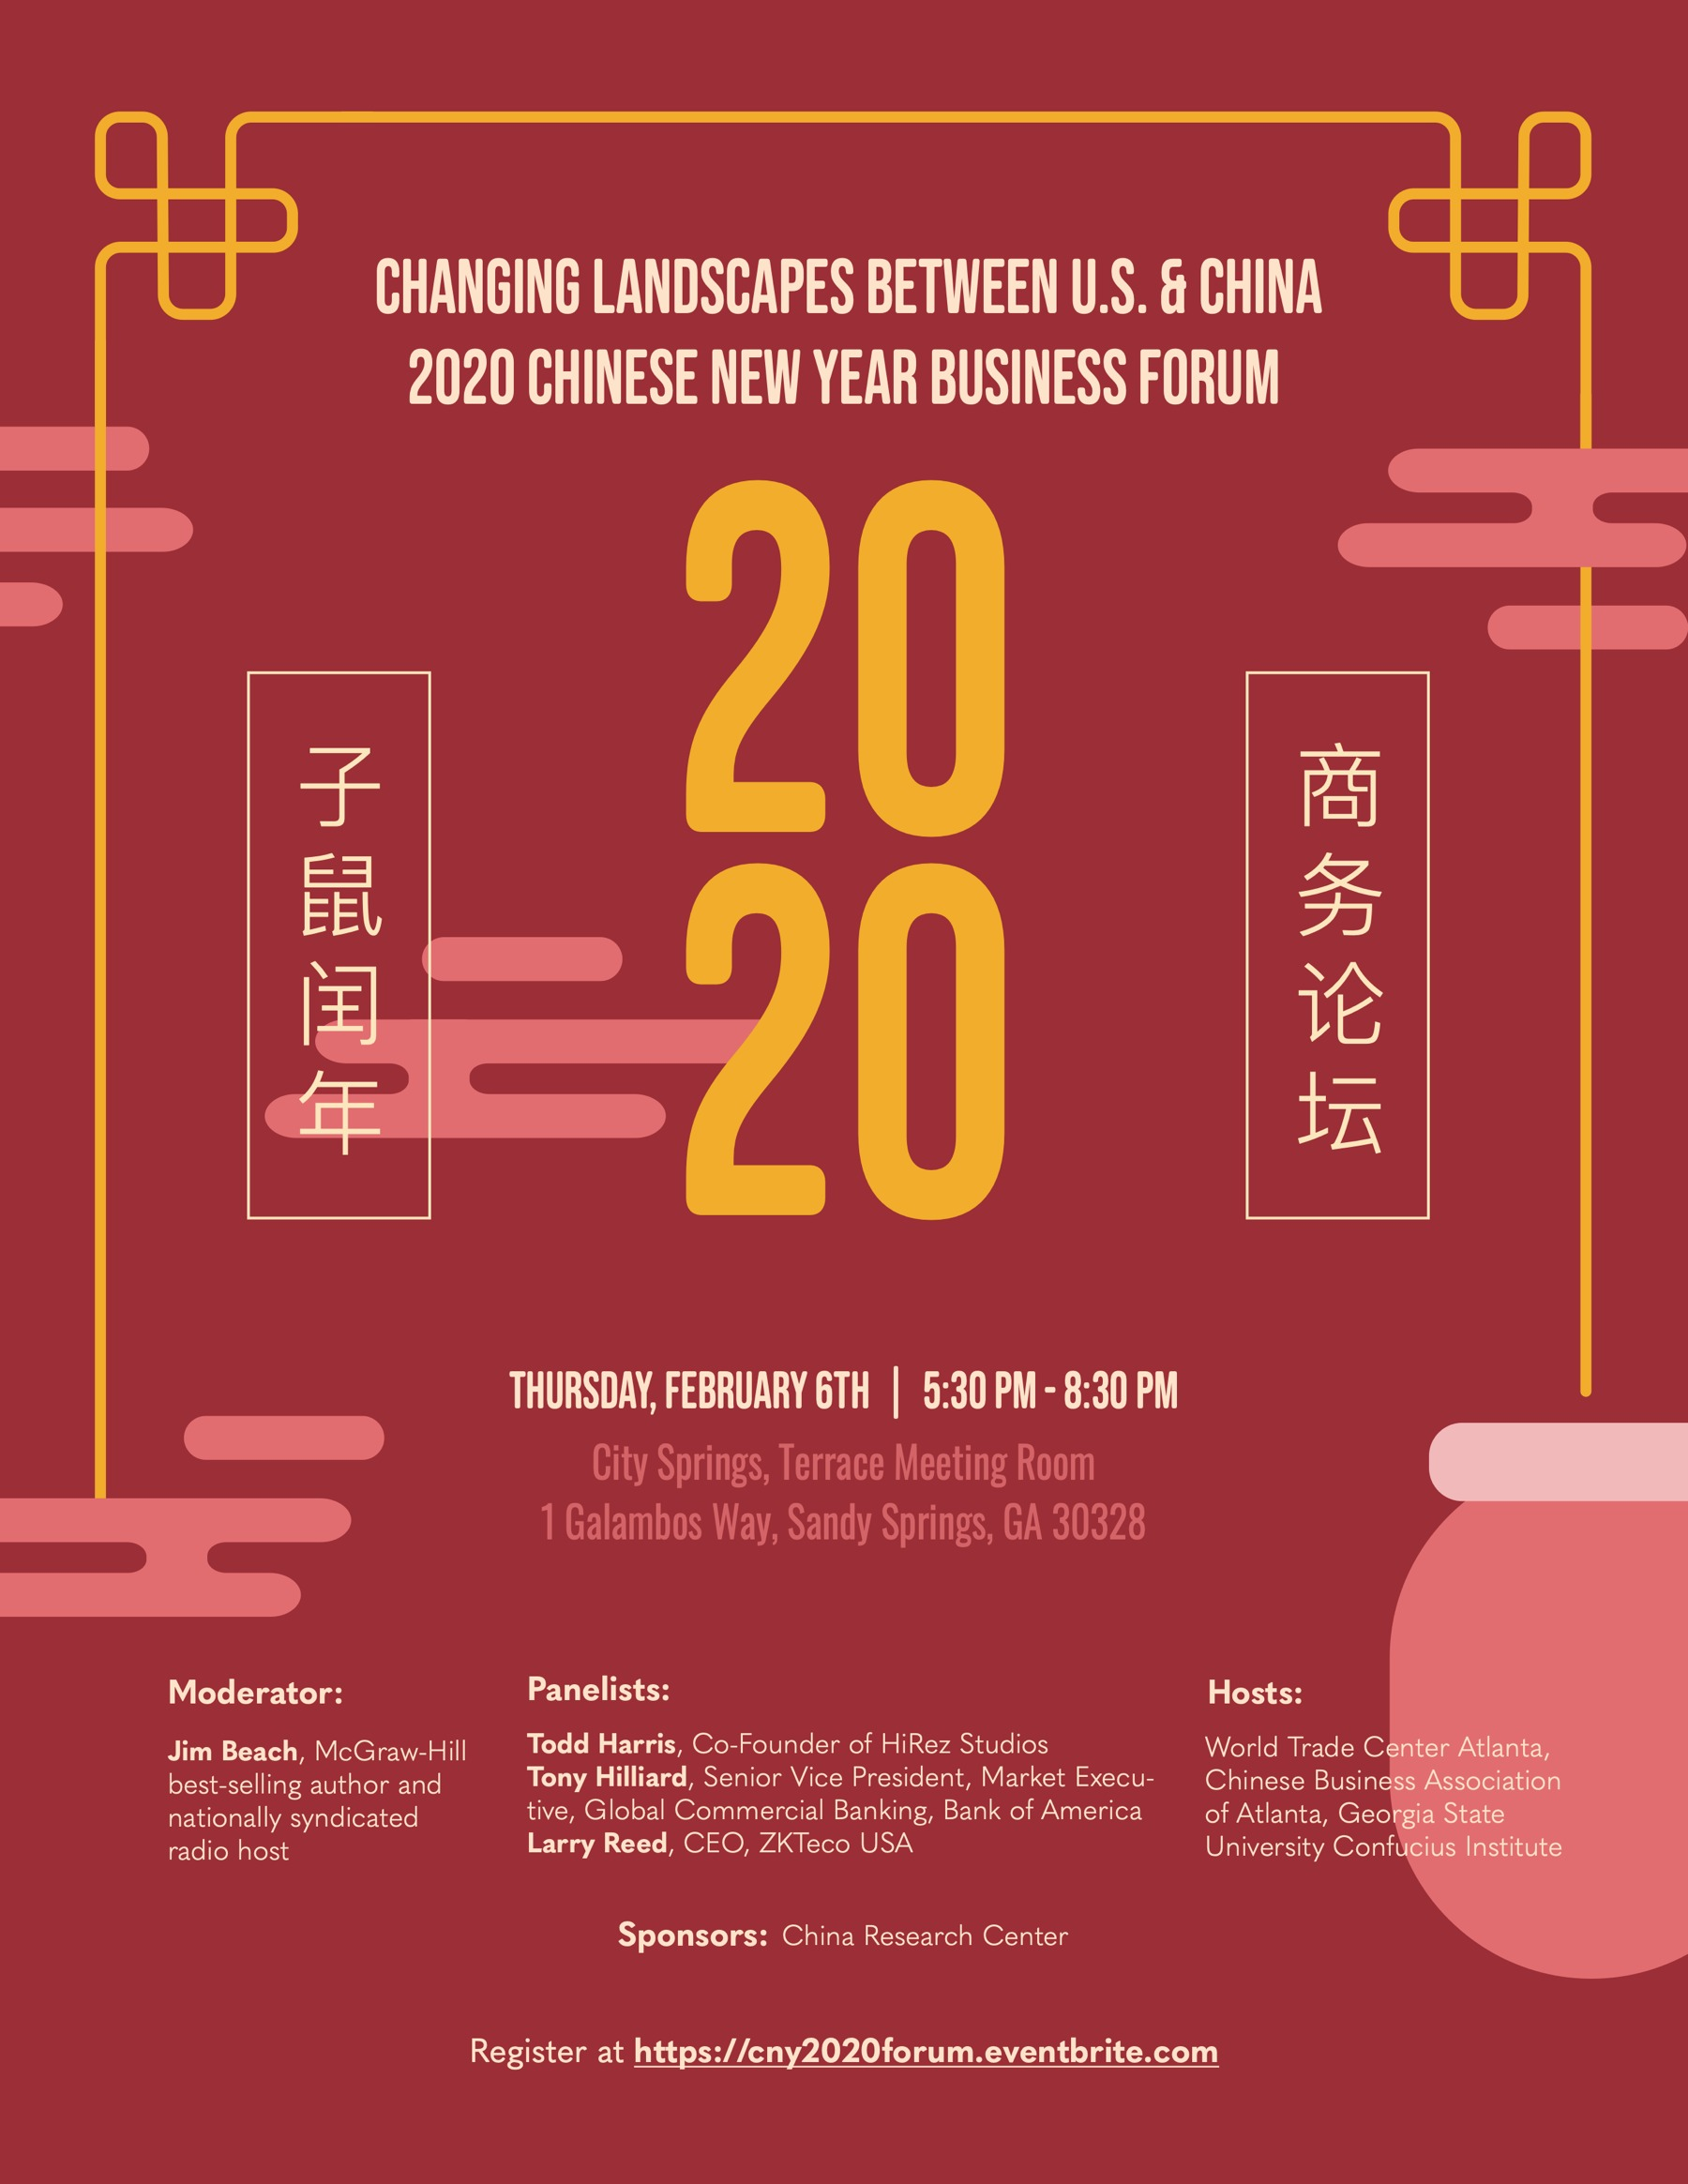 Changing Landscapes Between U.S. & China: 2020 Chinese New Year Business Forum